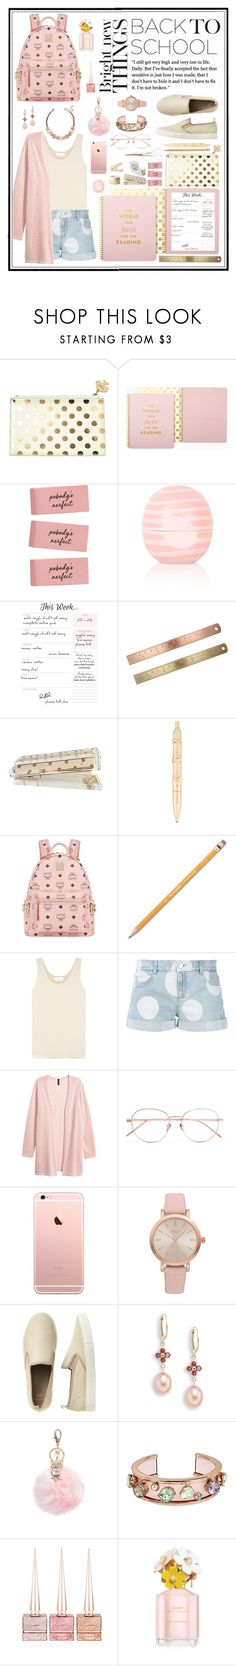 """Outfit #164"" by emydeishly ❤ liked on Polyvore featuring Kate Spade, Eos, MCM, Paper Mate, Chloé, STELLA McCARTNEY, H&M, Linda Farrow, Vivani and Gap"